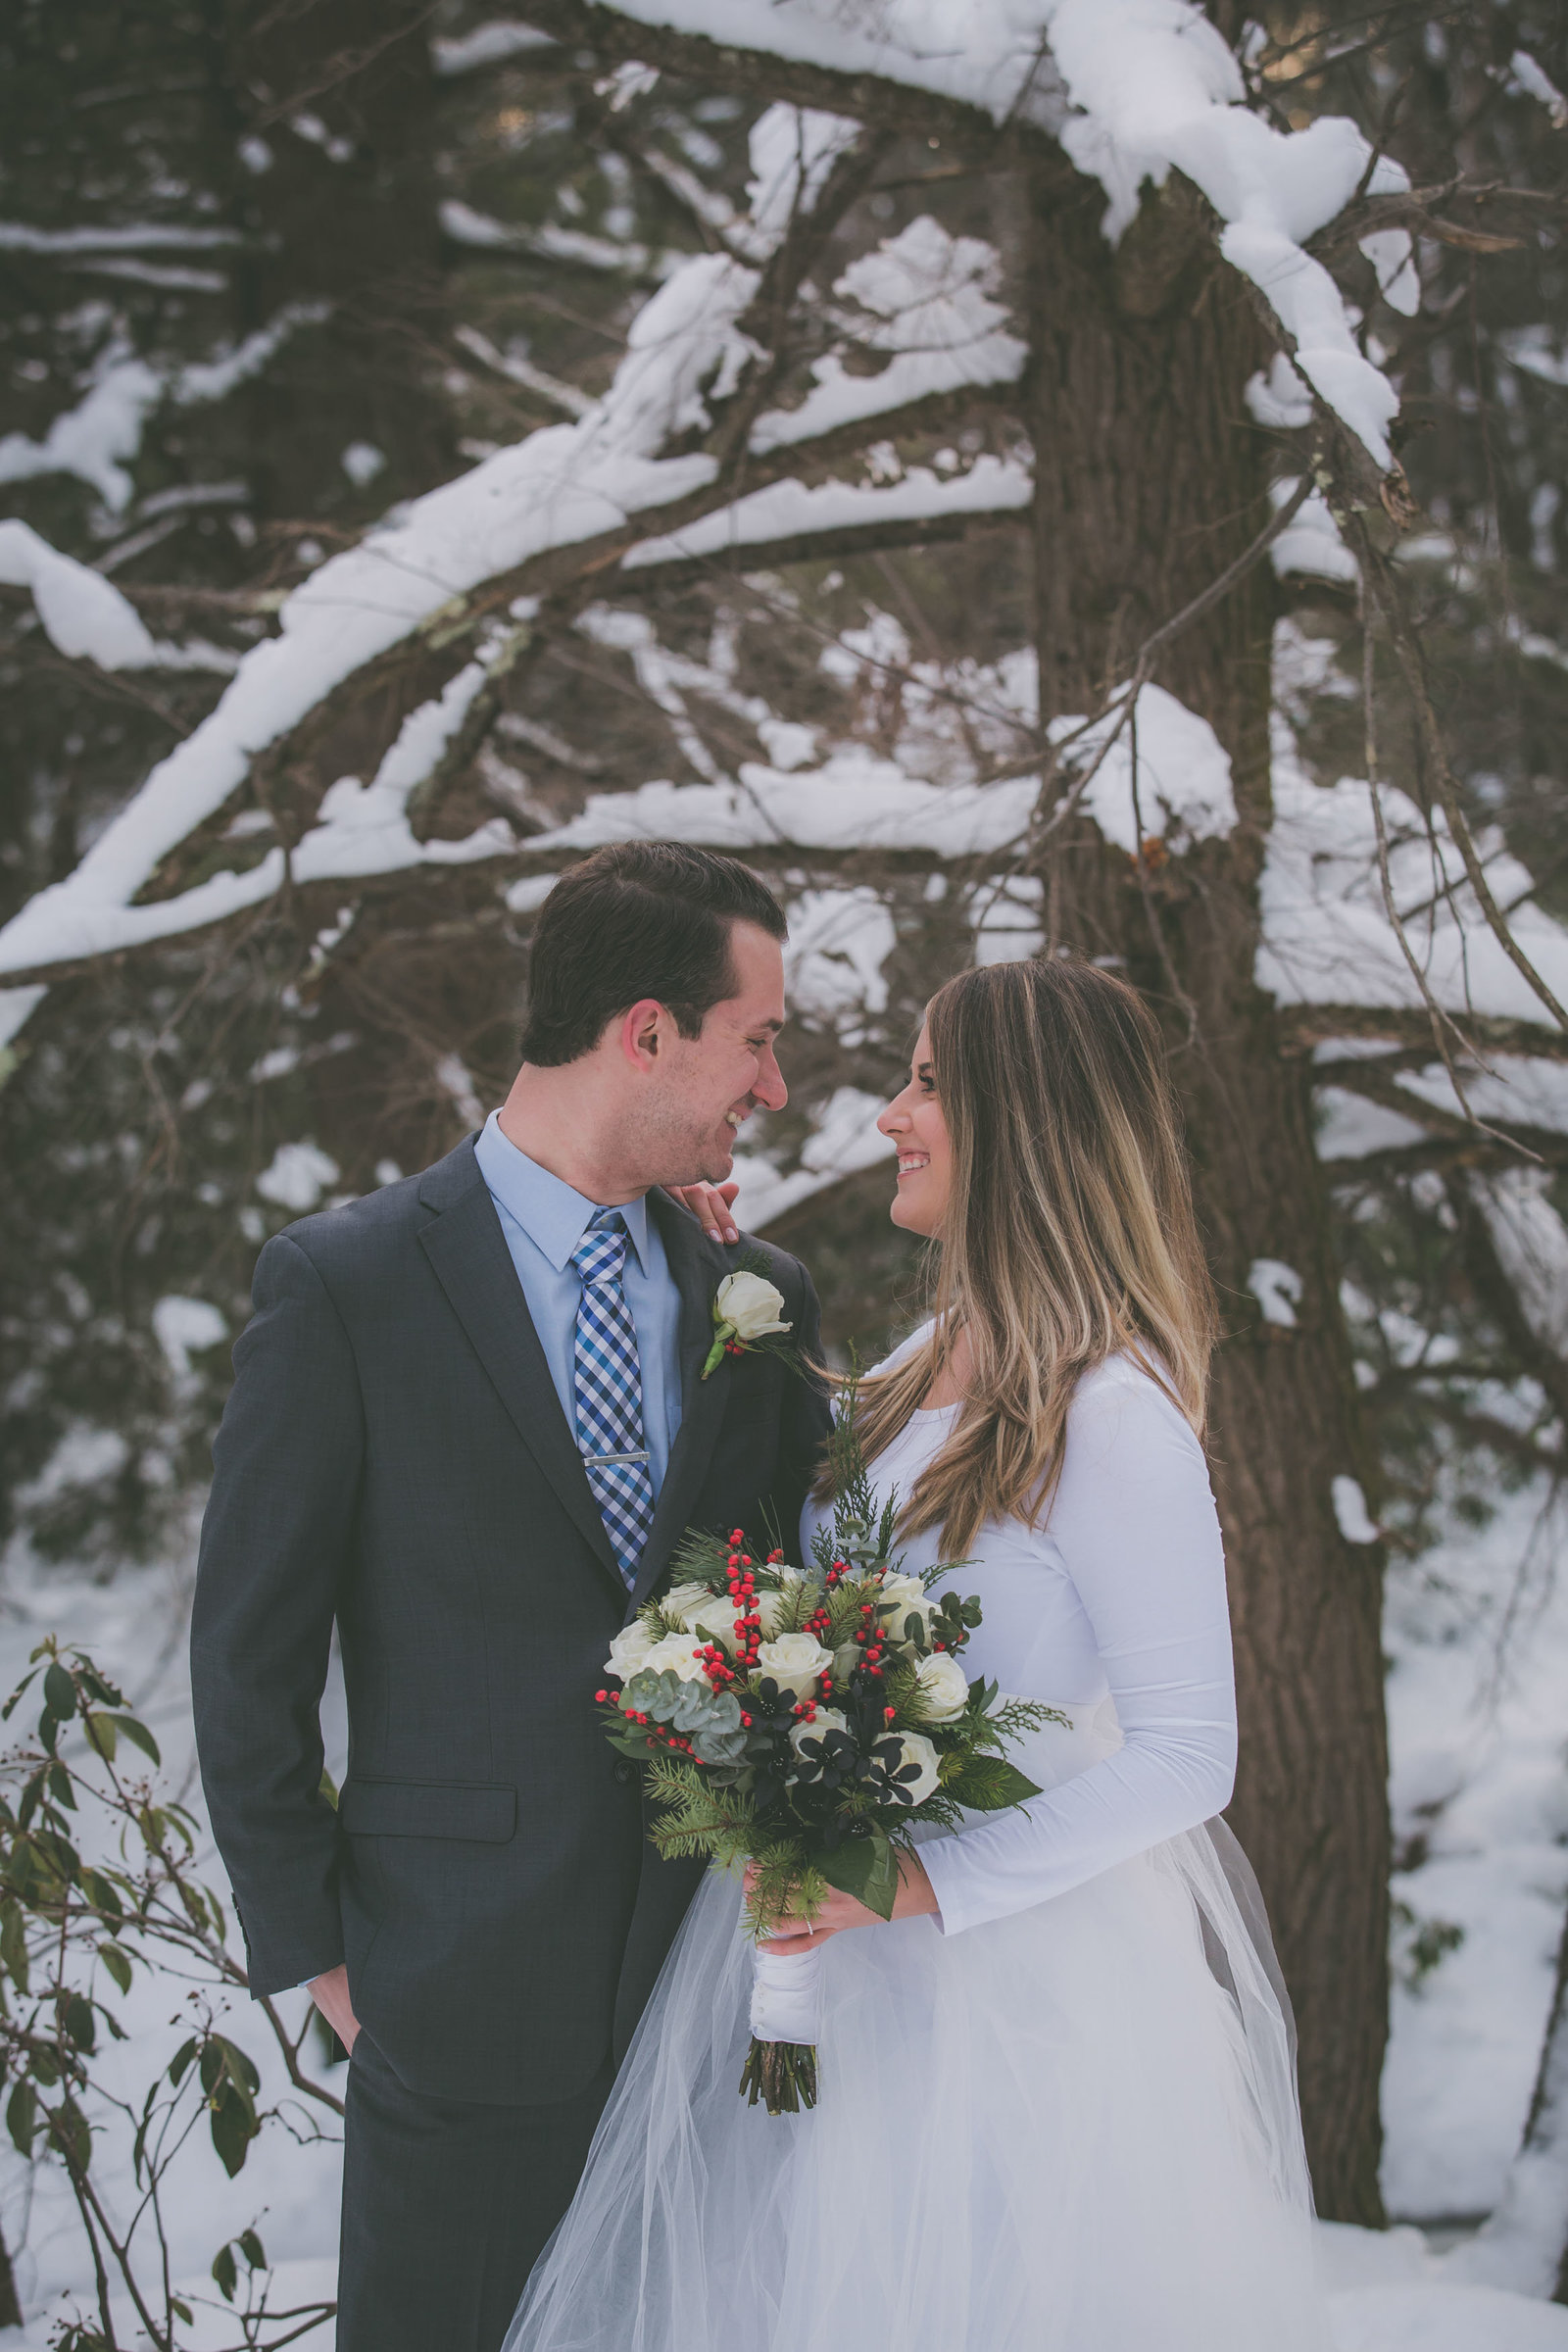 Groom and bride look at each other in woods covered by snow.